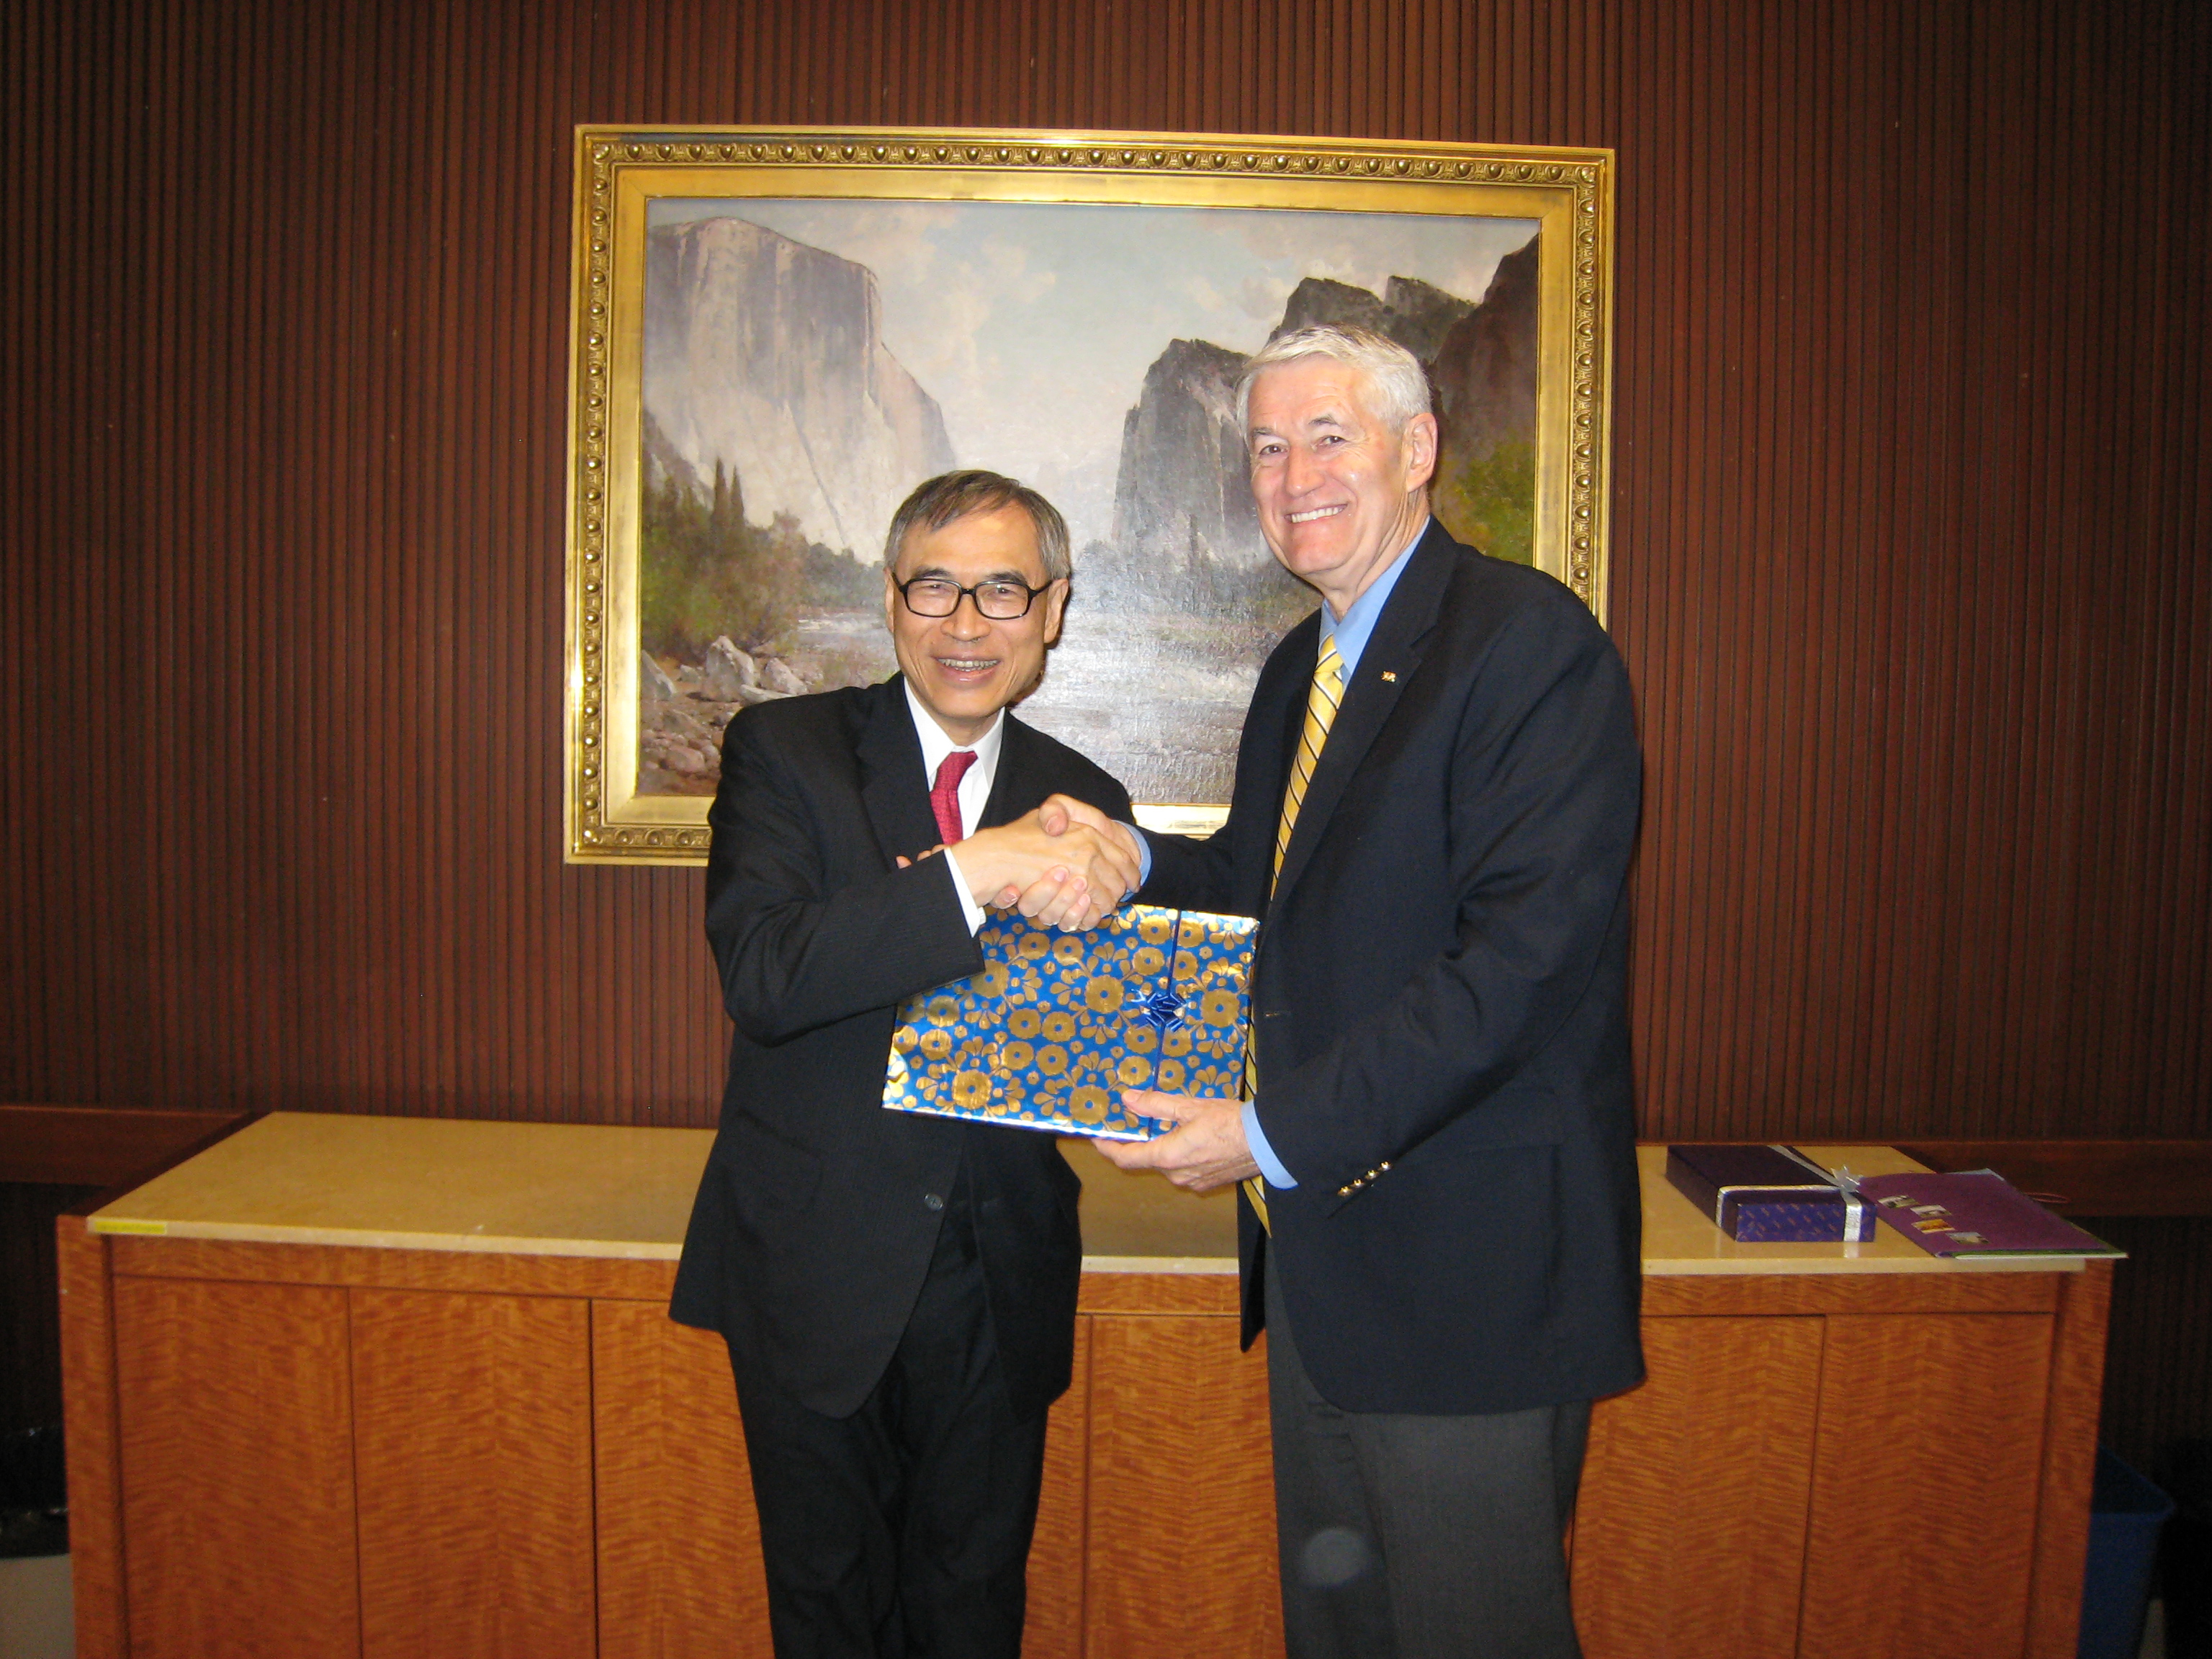 Prof. Lawrence J. Lau, Vice-Chancellor of The Chinese University of Hong Kong (left) and  Prof. Robert Birgeneau, Chancellor of the University of California at Berkeley.